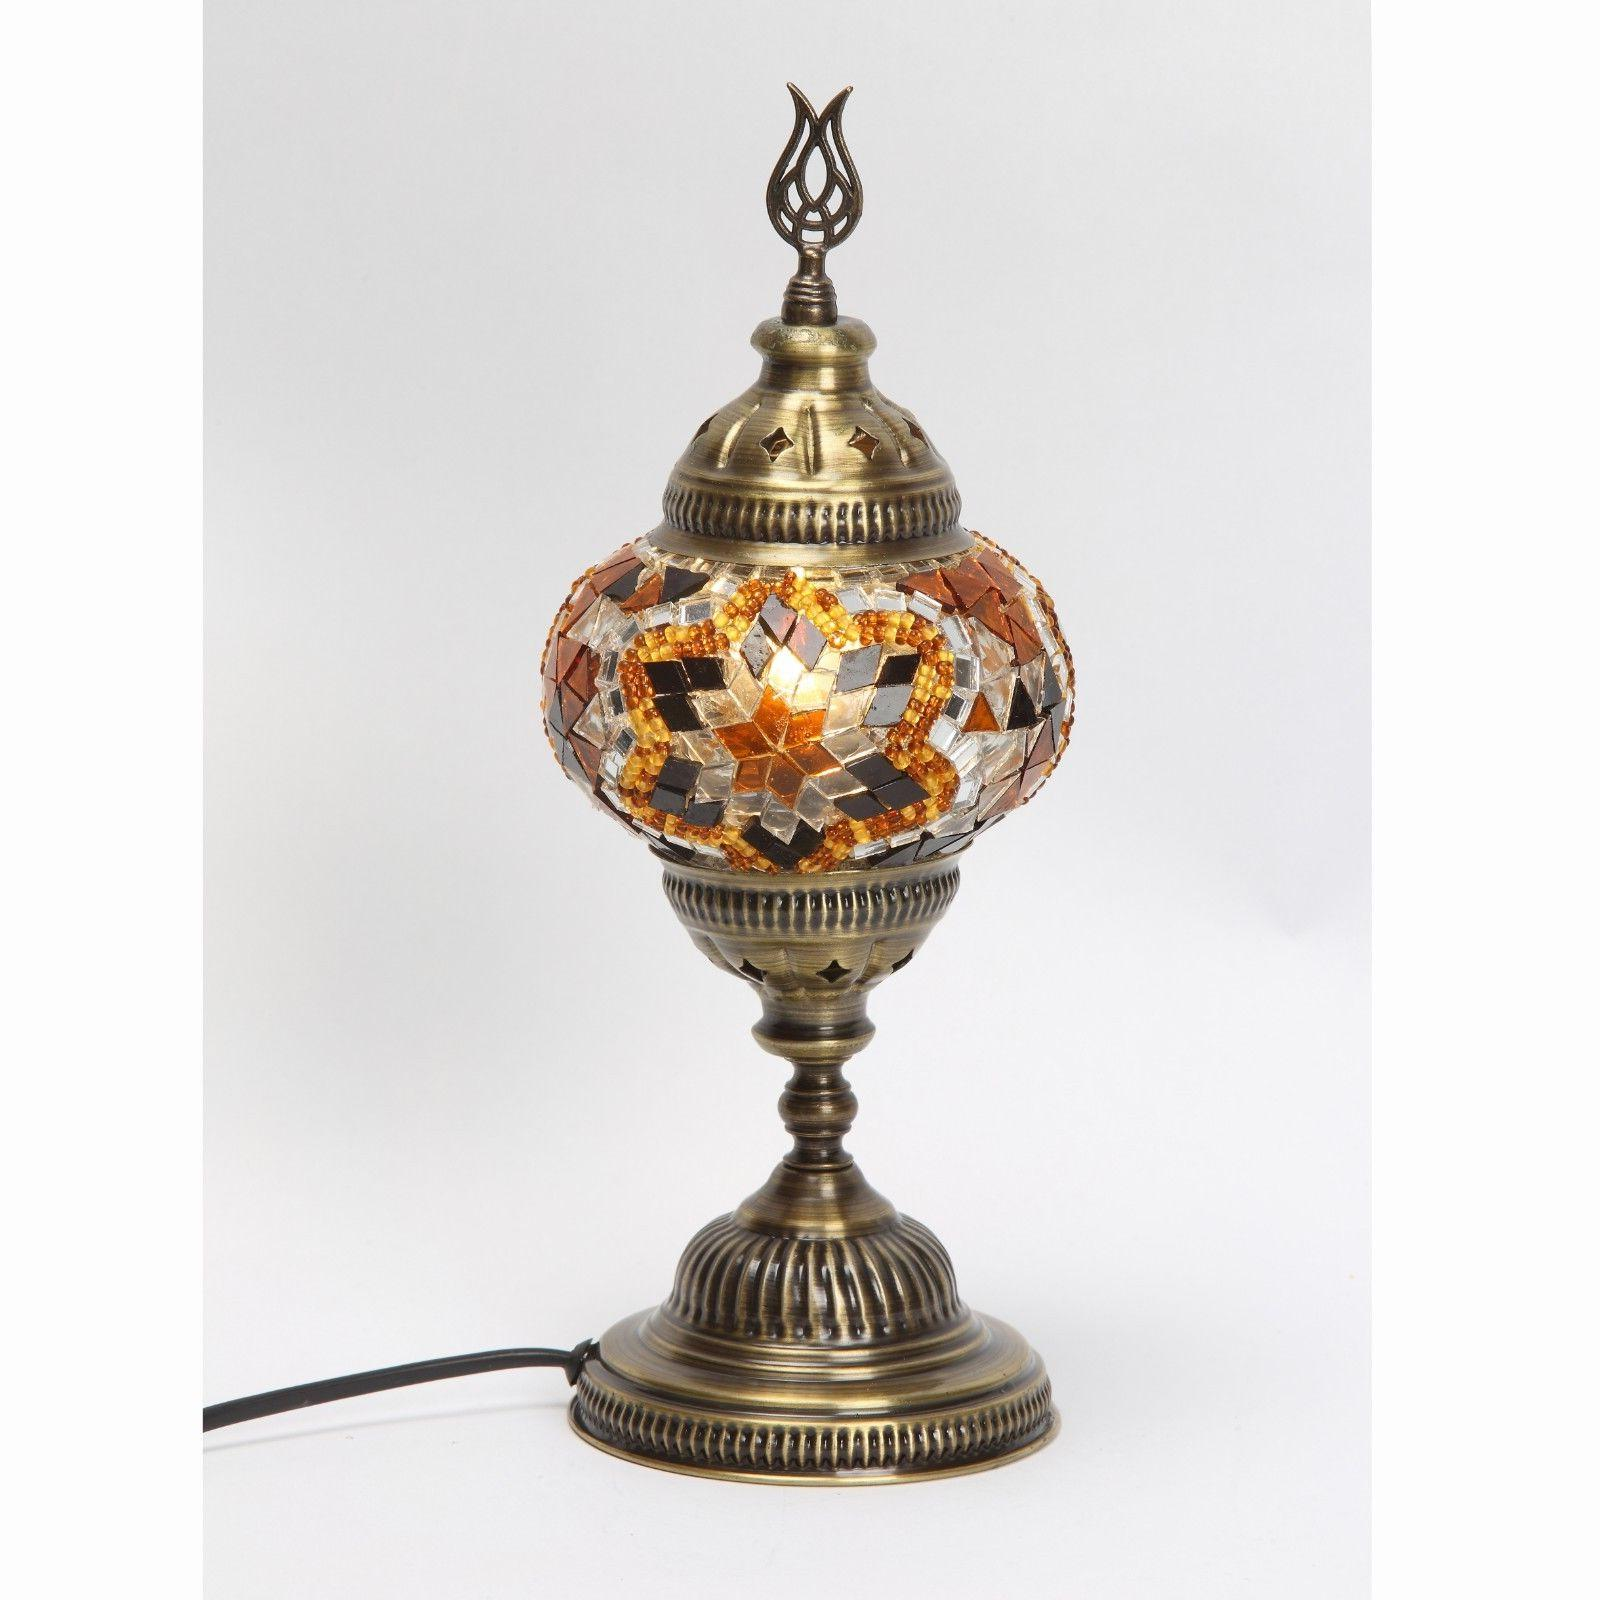 100% Handmade Turkish Ottoman Mosaic Table Lamp